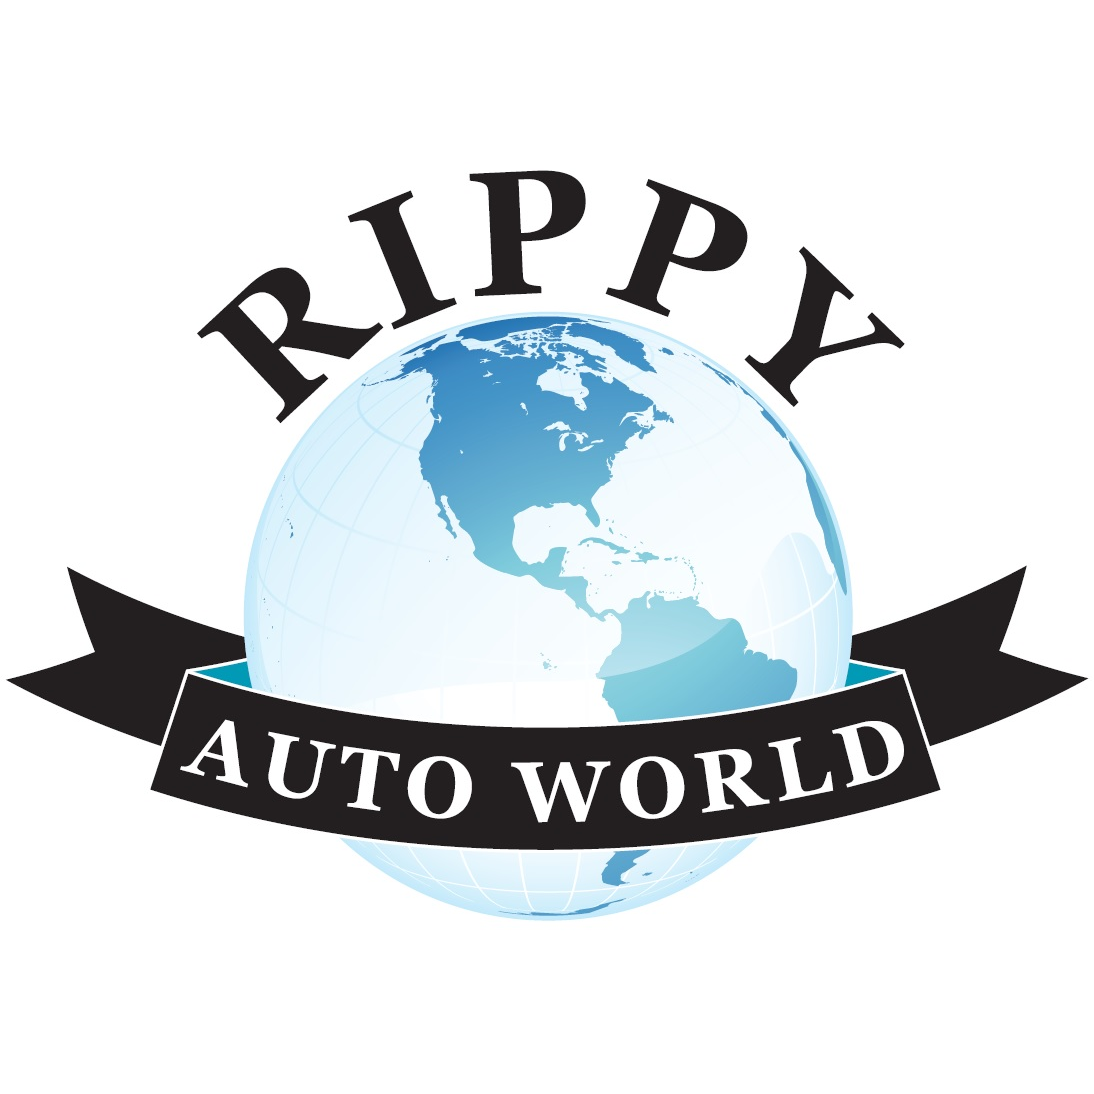 Rippy Auto World